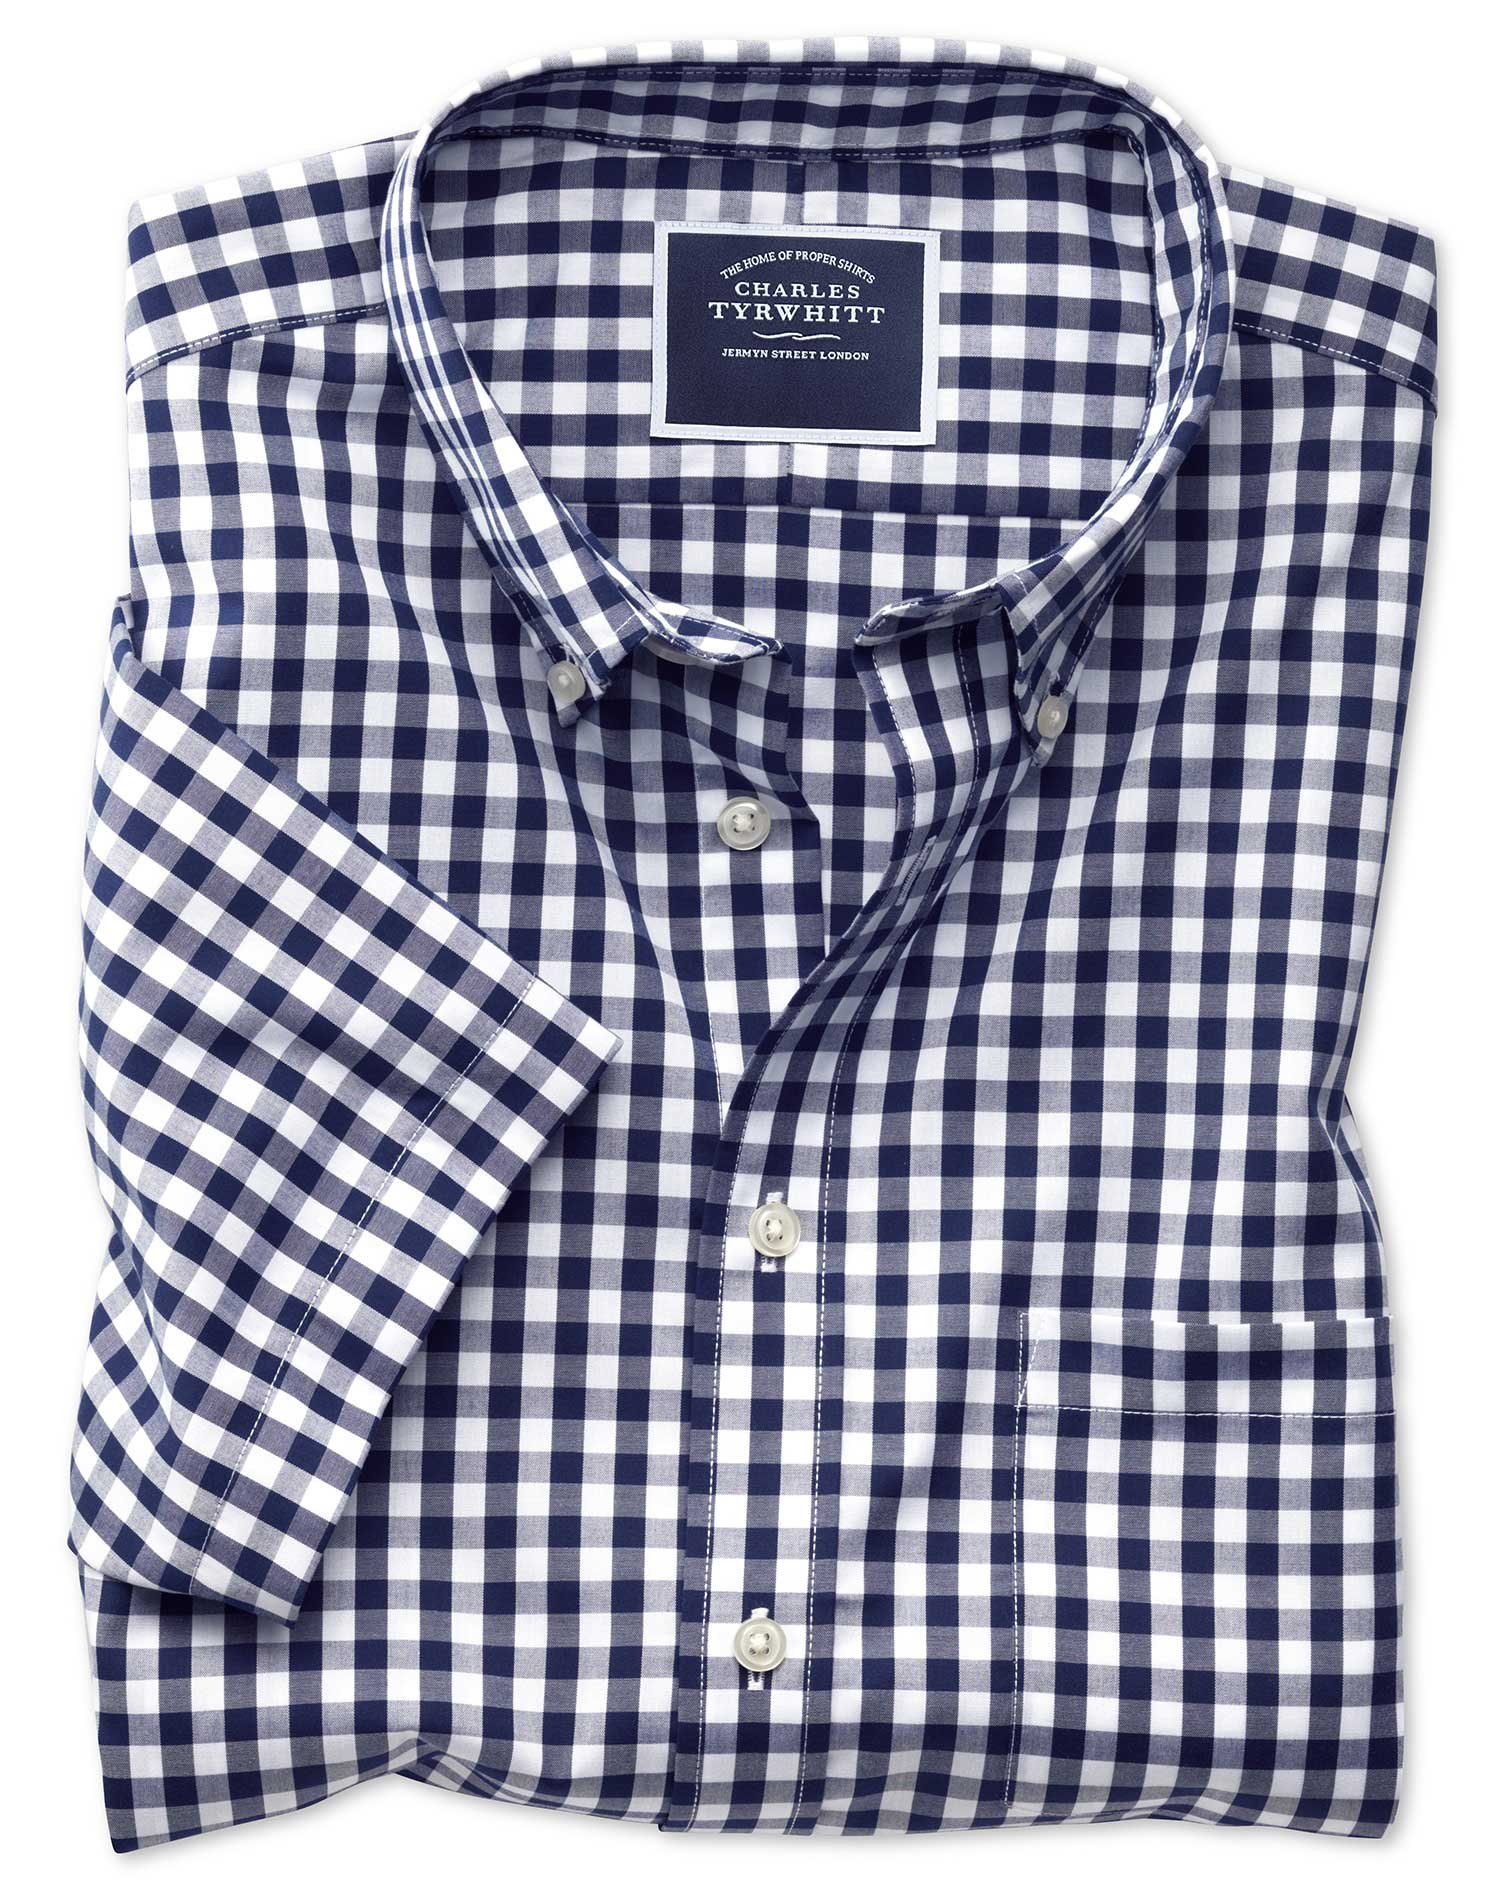 Slim Fit Button-Down Non-Iron Poplin Short Sleeve Navy Gingham Cotton Shirt Single Cuff Size Large b